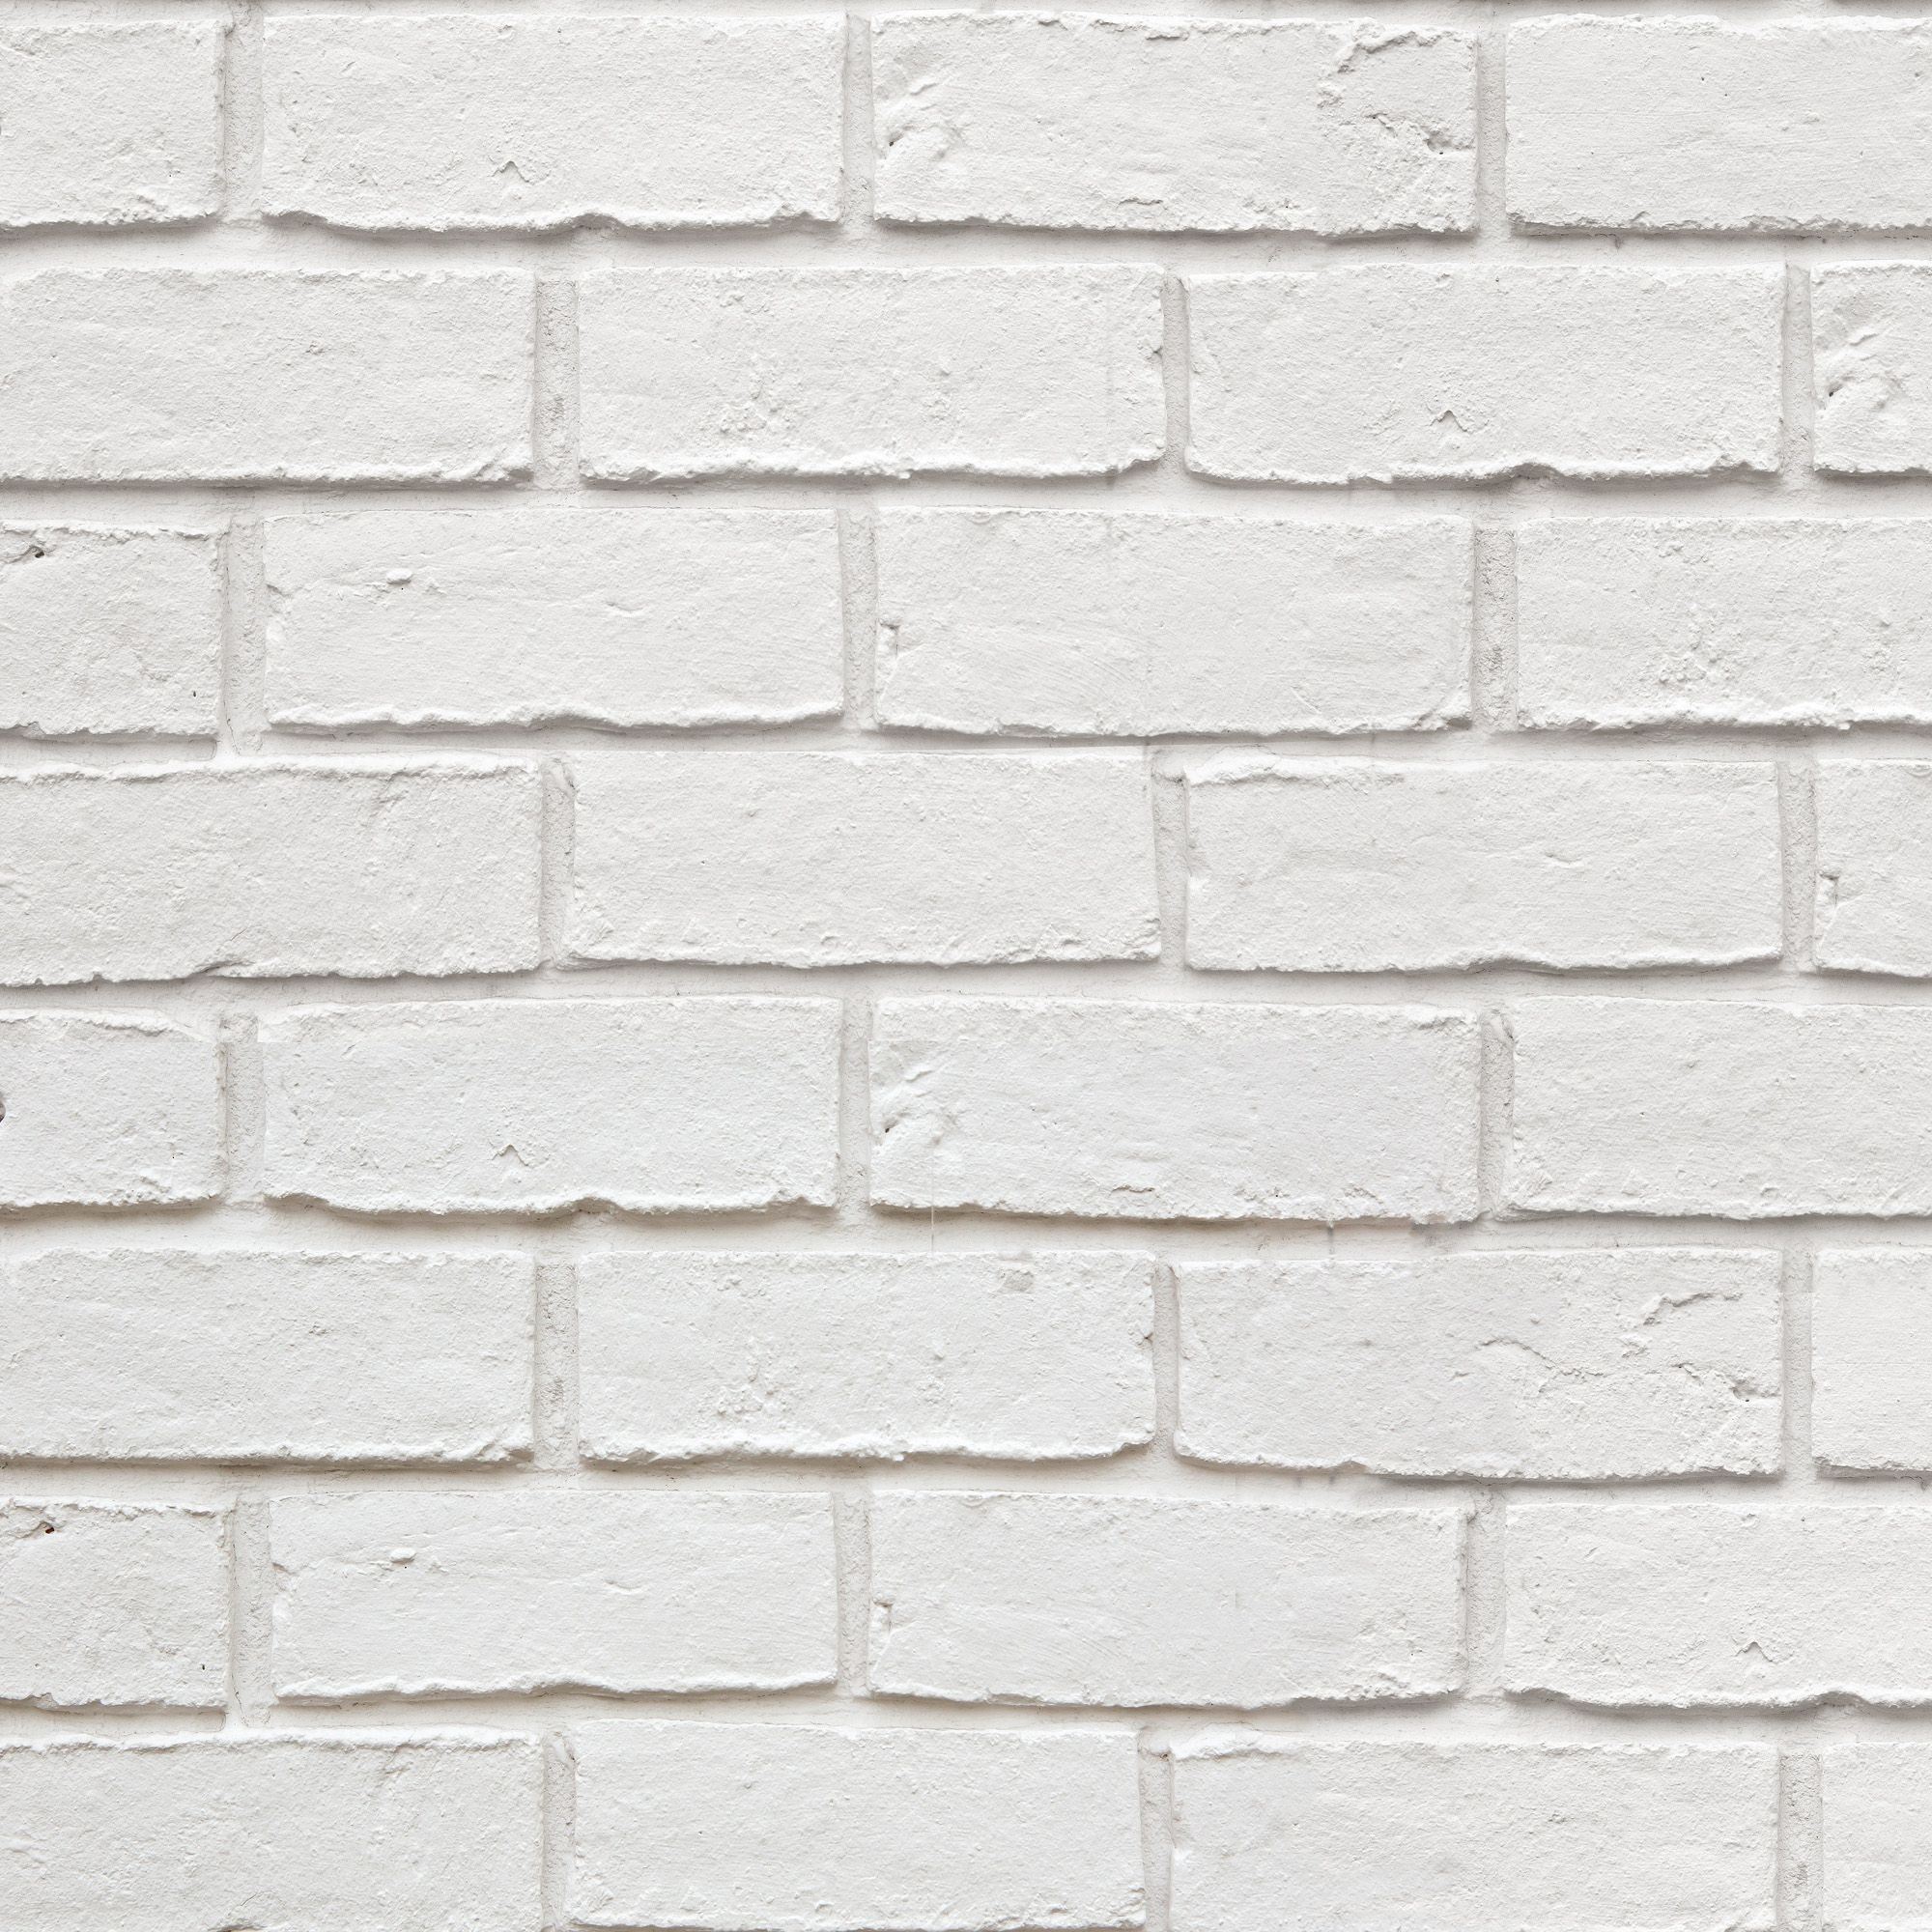 brick texture shirt roblox Colours White Faux Wall Textured Wallpaper Departments Diy At B Amp Q Brick Effect Wallpaper White Brick Wallpaper Faux Walls